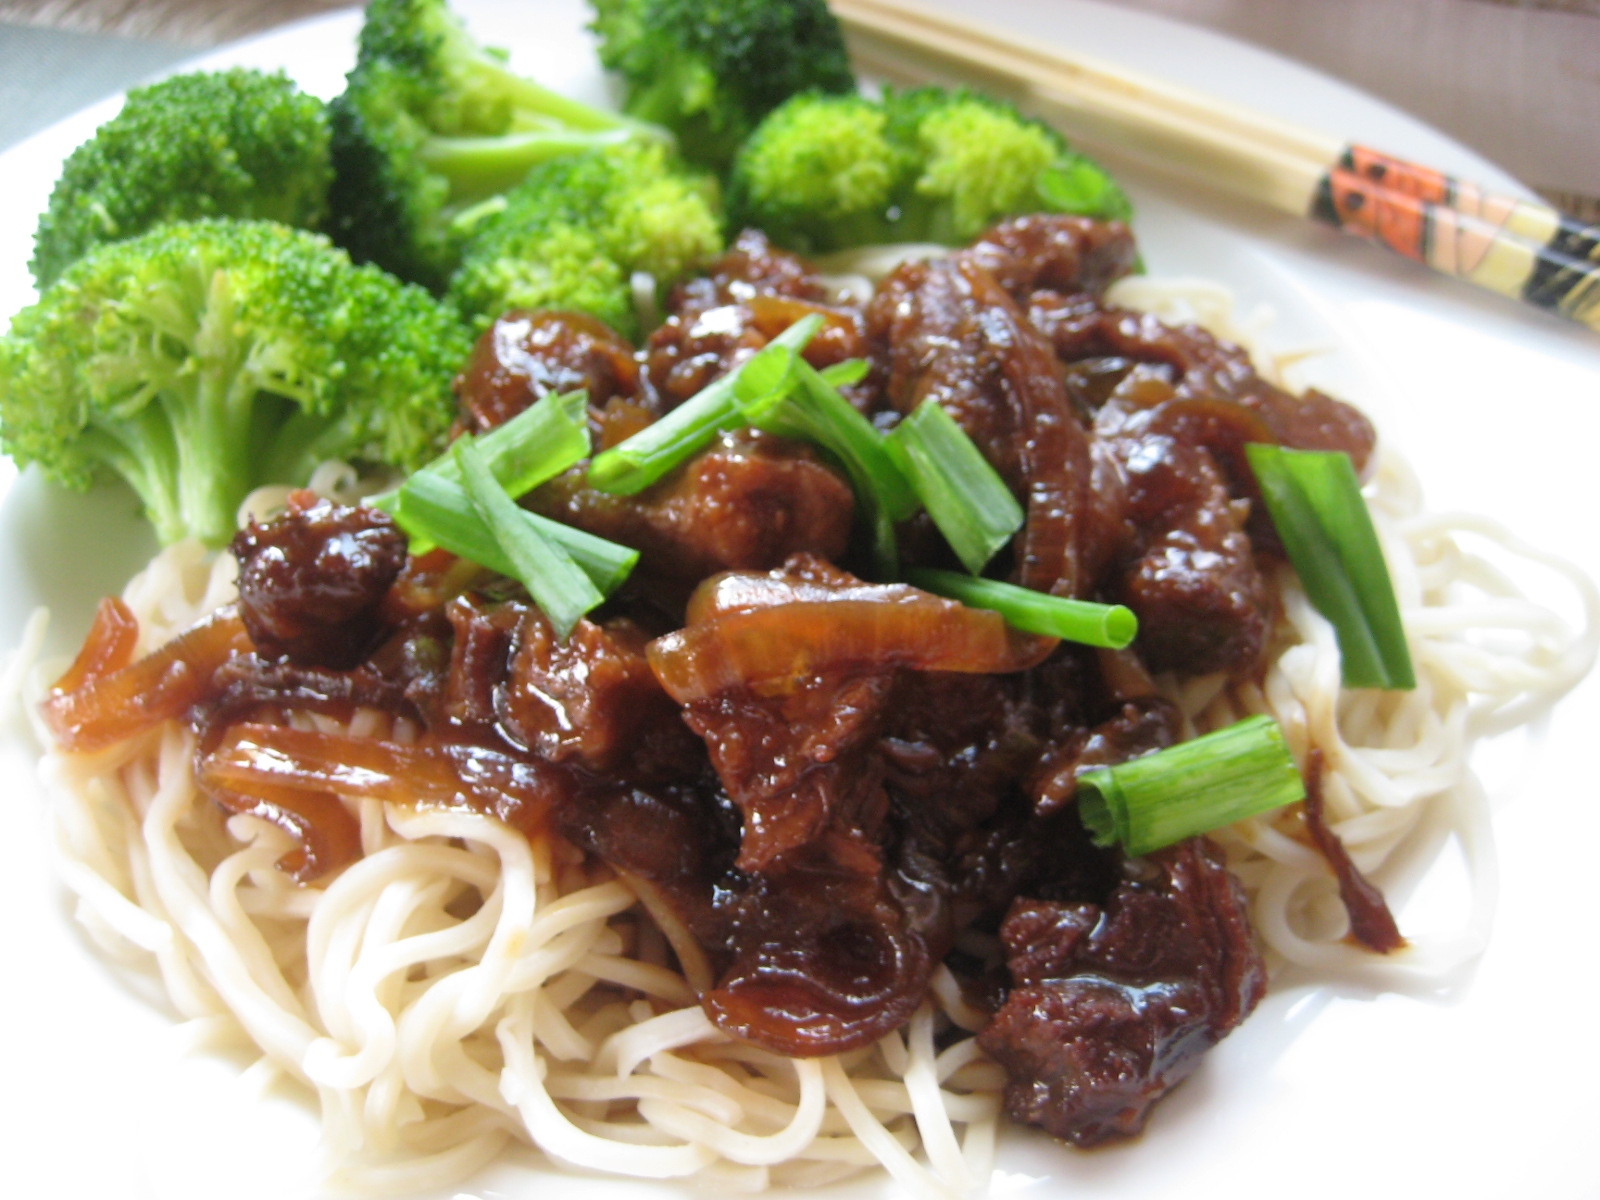 Slow cooker mongolian beef - an easy, delicious dinner